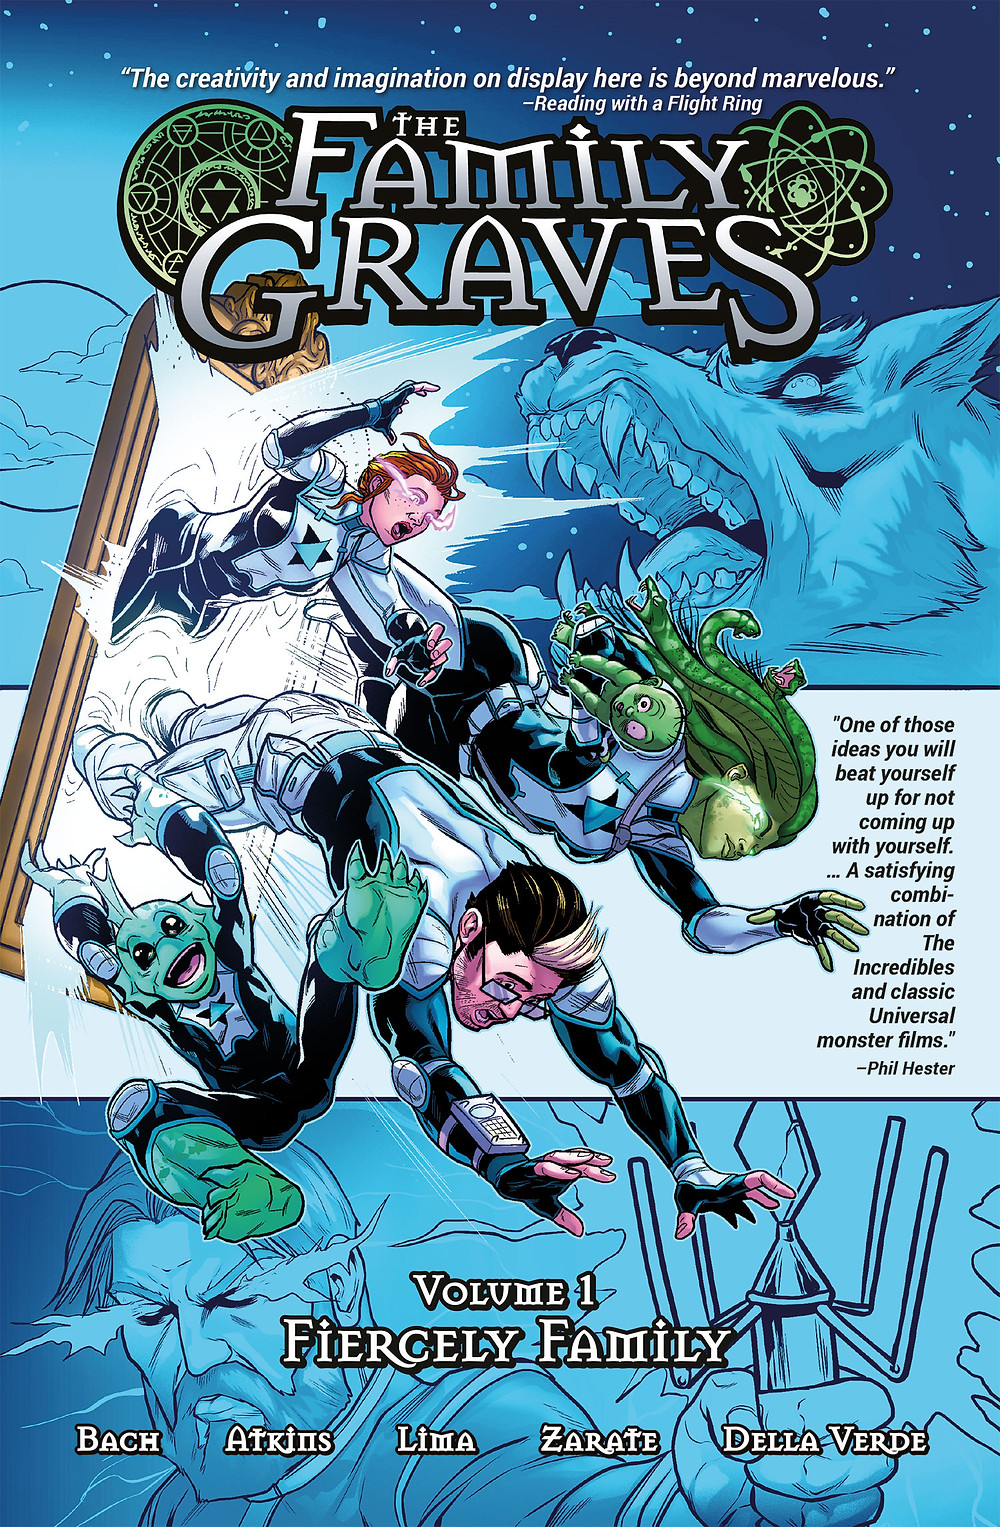 The Family Graves, Vol.1, cover by Brian Atkins & Juancho, Source Point Press, Bach/Atkins